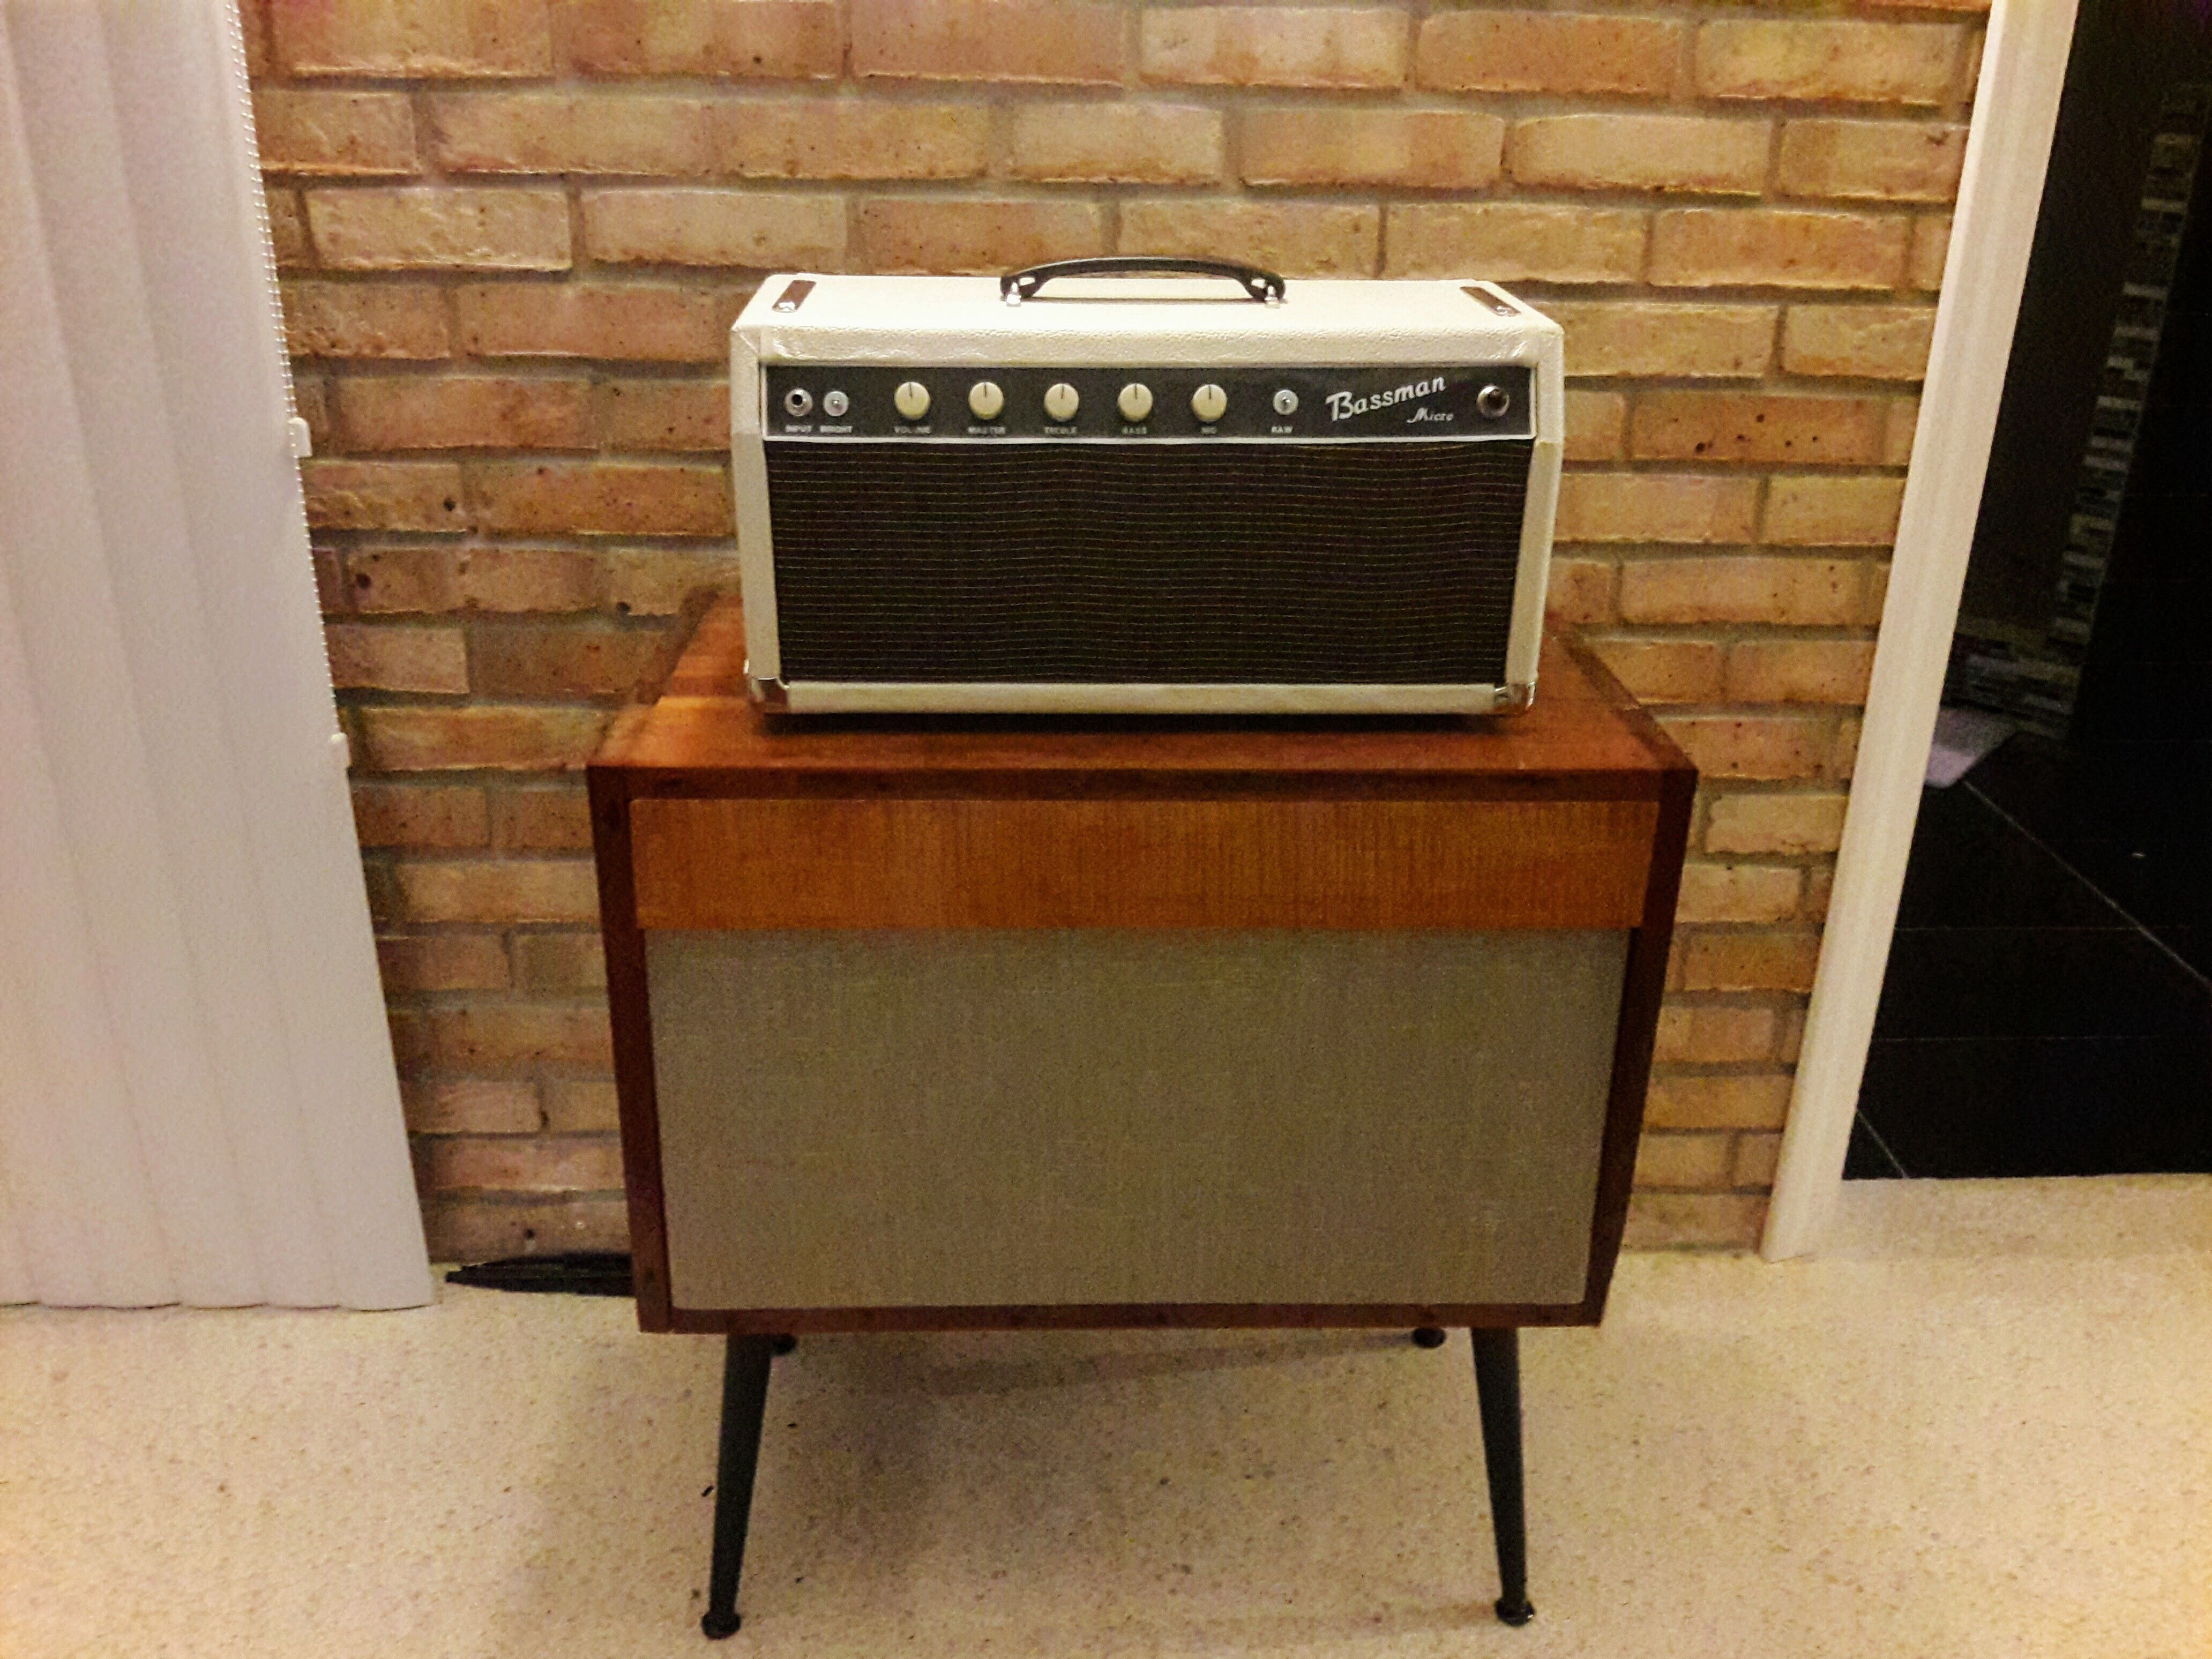 Bassman micro head with a refinished vintage hifi cab that I converted to an open back 2x10